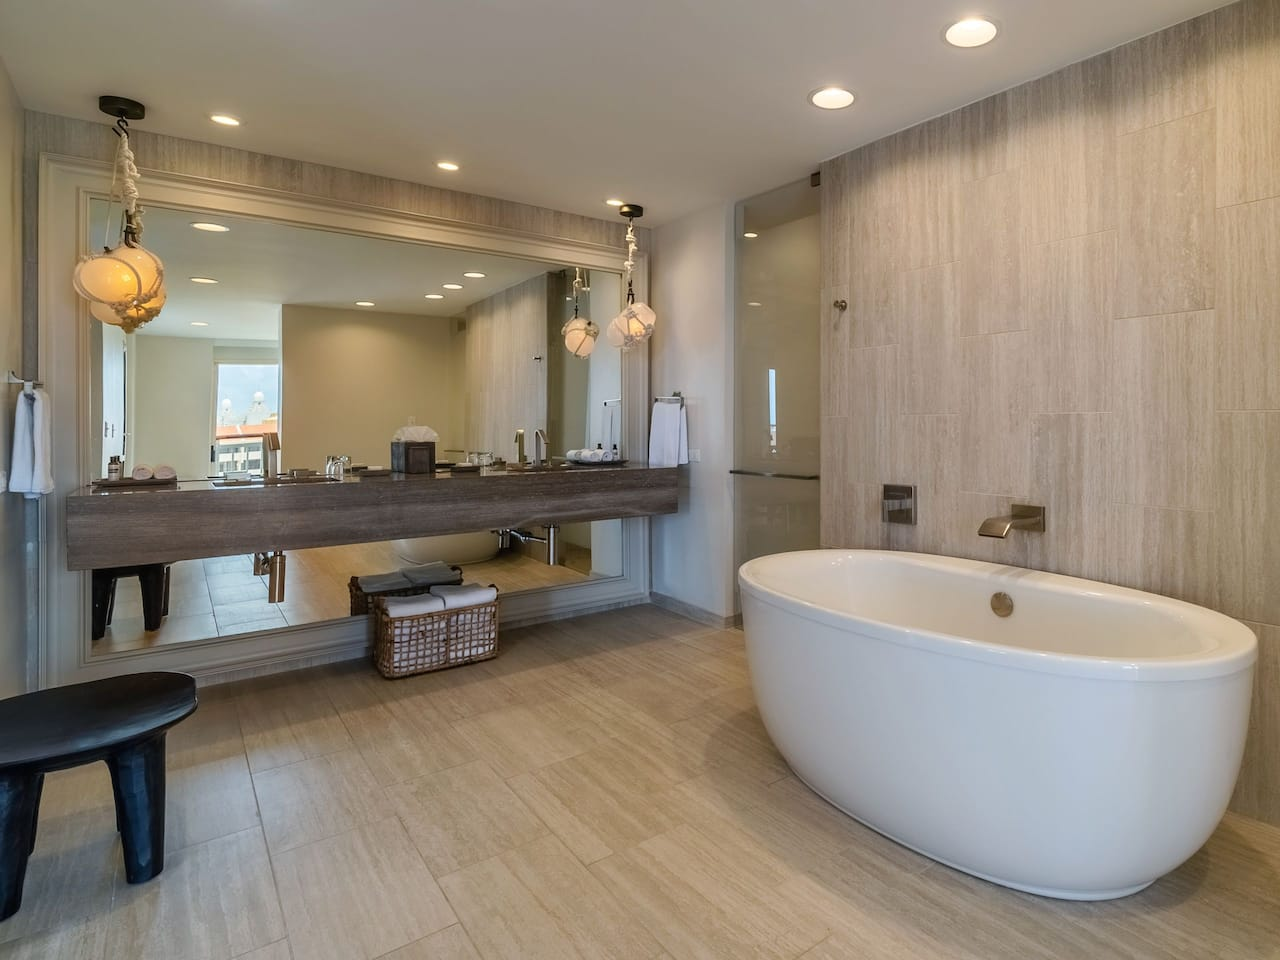 Governors Suite Master Bathroom